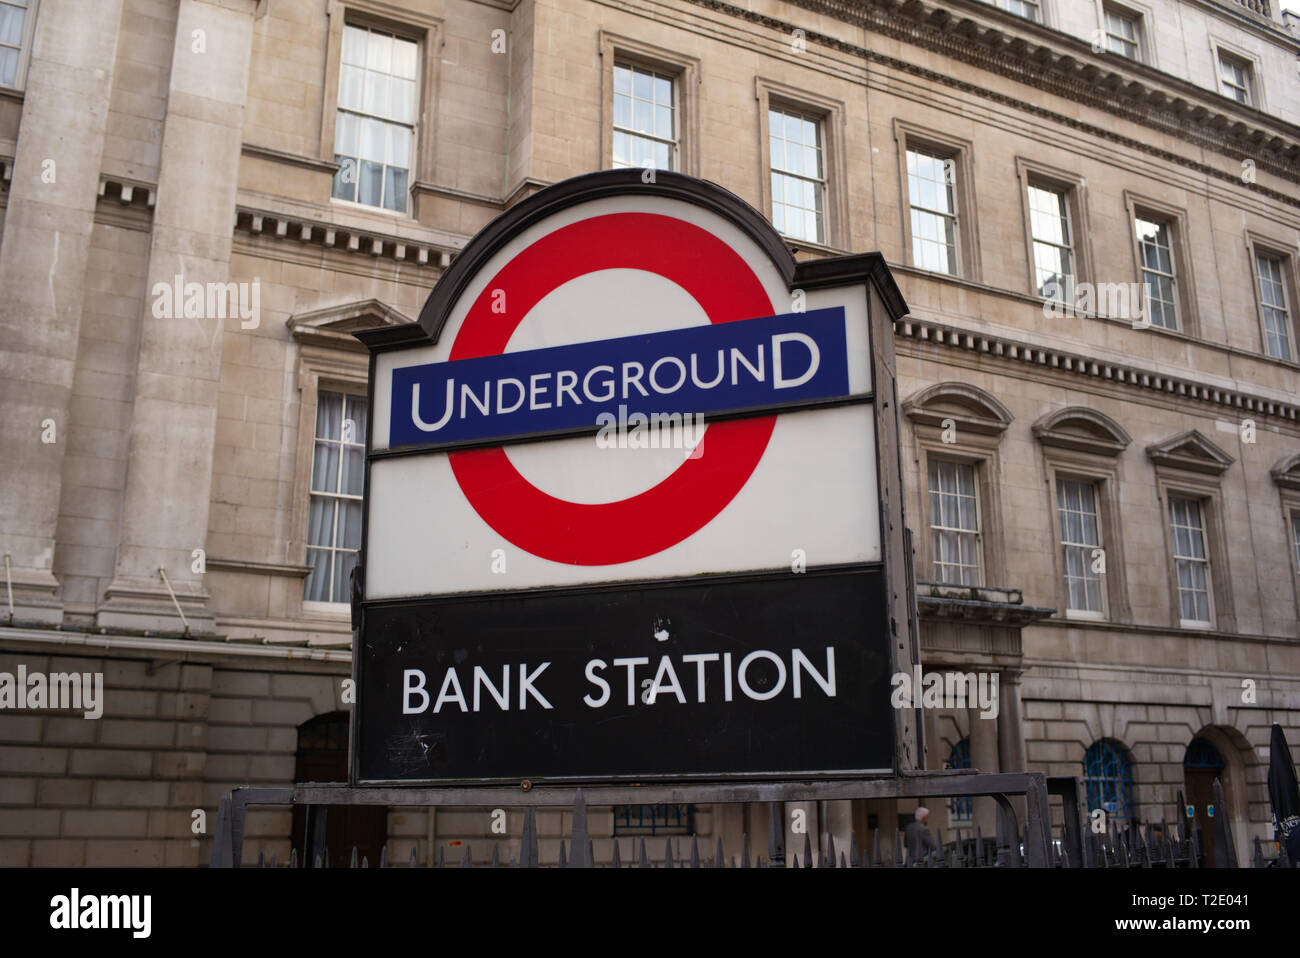 Bank Station underground sign in London England. - Stock Image